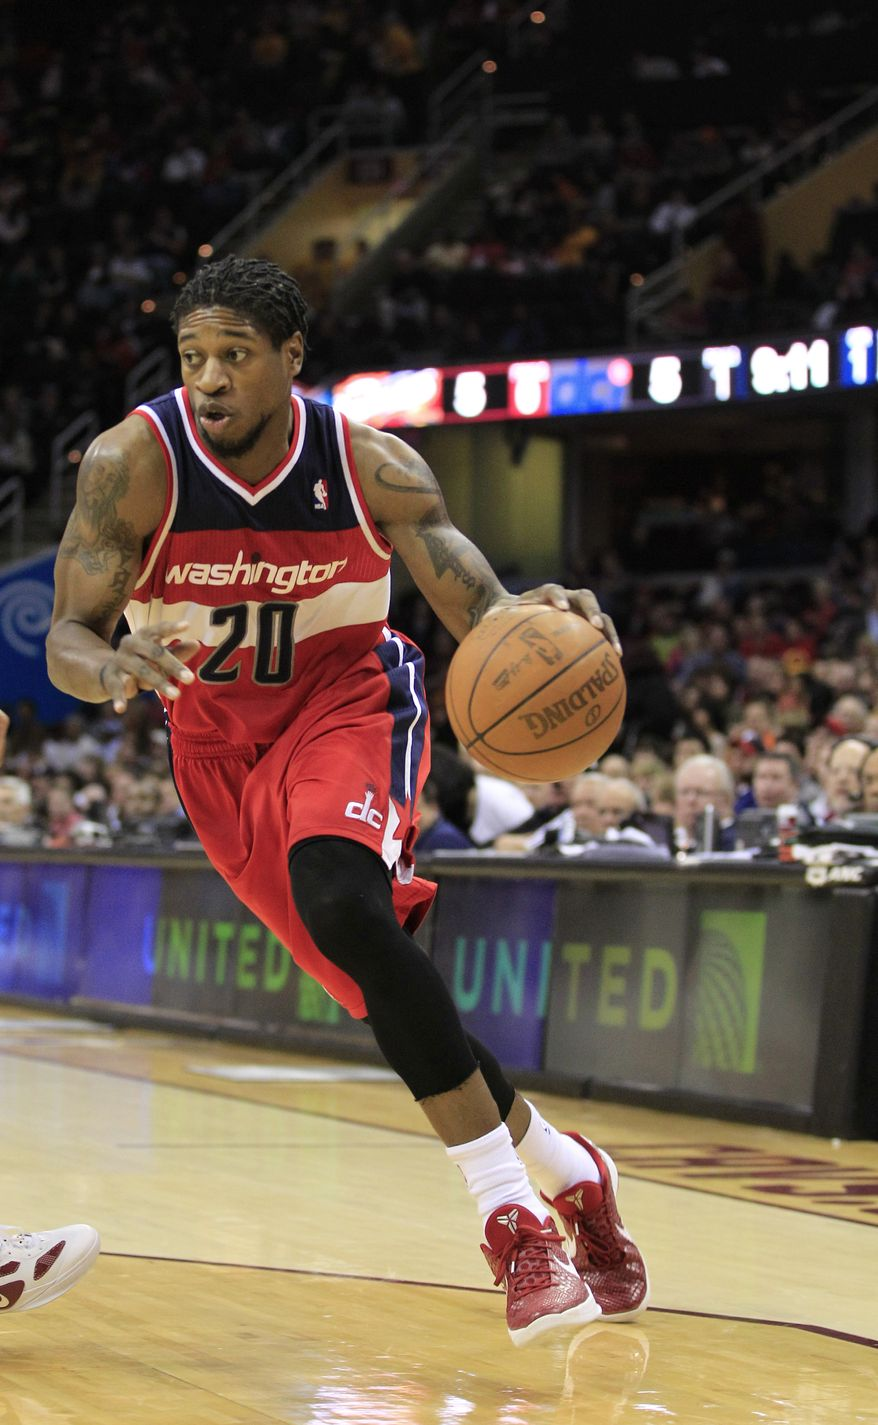 Washington Wizards guard-forward Cartier Martin signed a one-year deal this offseason. (AP Photo/Tony Dejak)